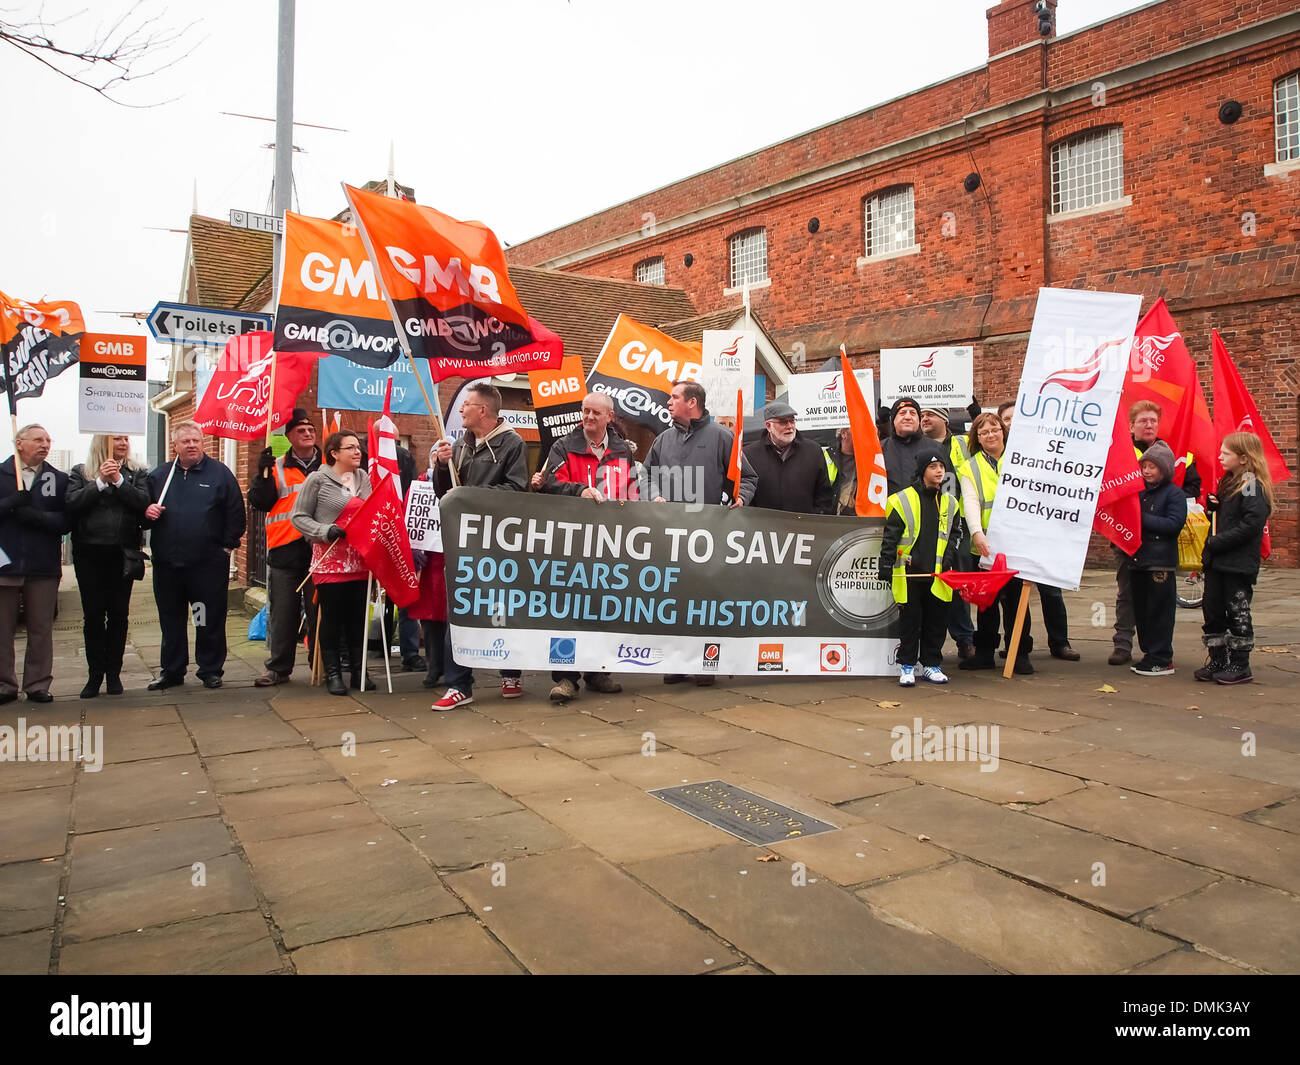 Portsmouth, UK. 14th December 2013. Hundreds of BAE workers protest against the possible closure of the BAE shipbuilding facility. The protesters met outside of Portsmouth naval dockyard where there was heavy union representation. Credit:  simon evans/Alamy Live News - Stock Image